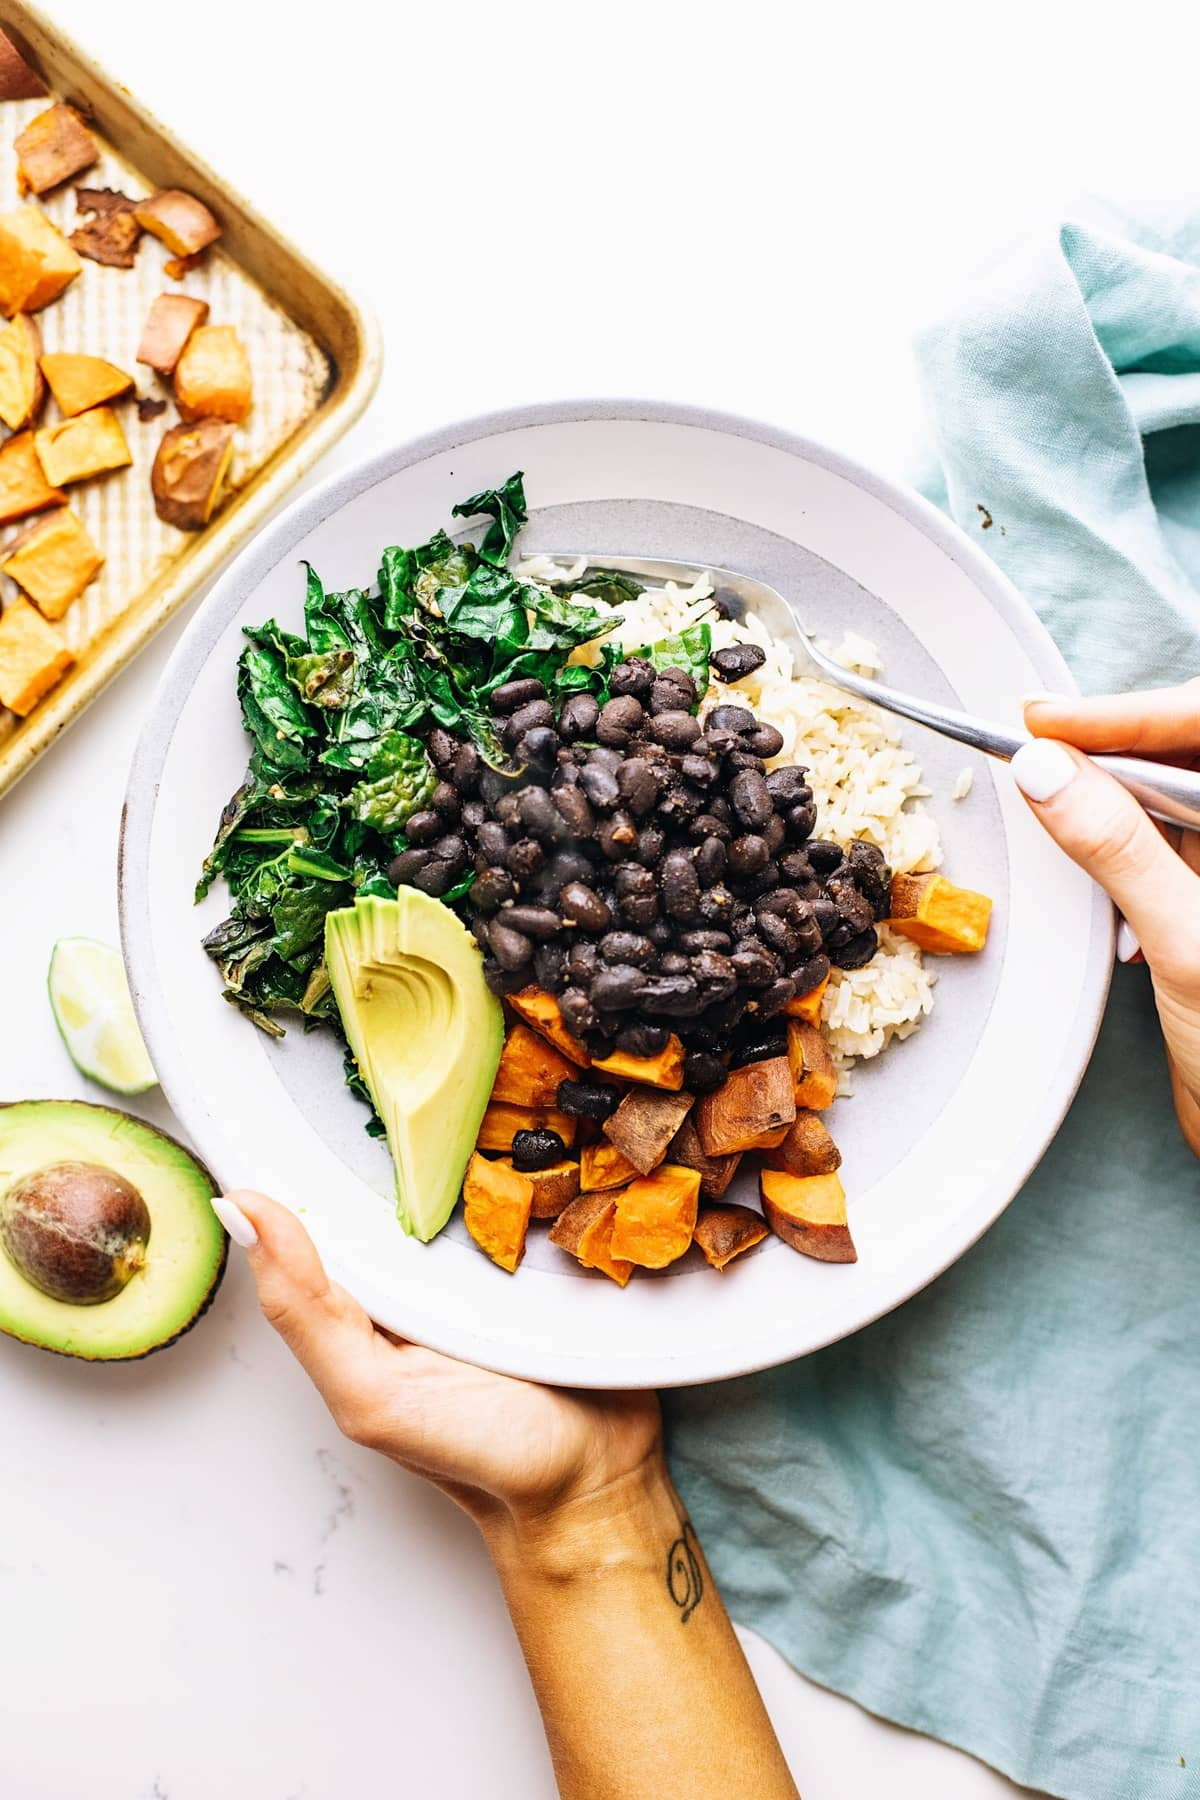 Hands holding a grey ceramic bowl with sweet potatoes and black beans in it with a blue napkin and food in the background.